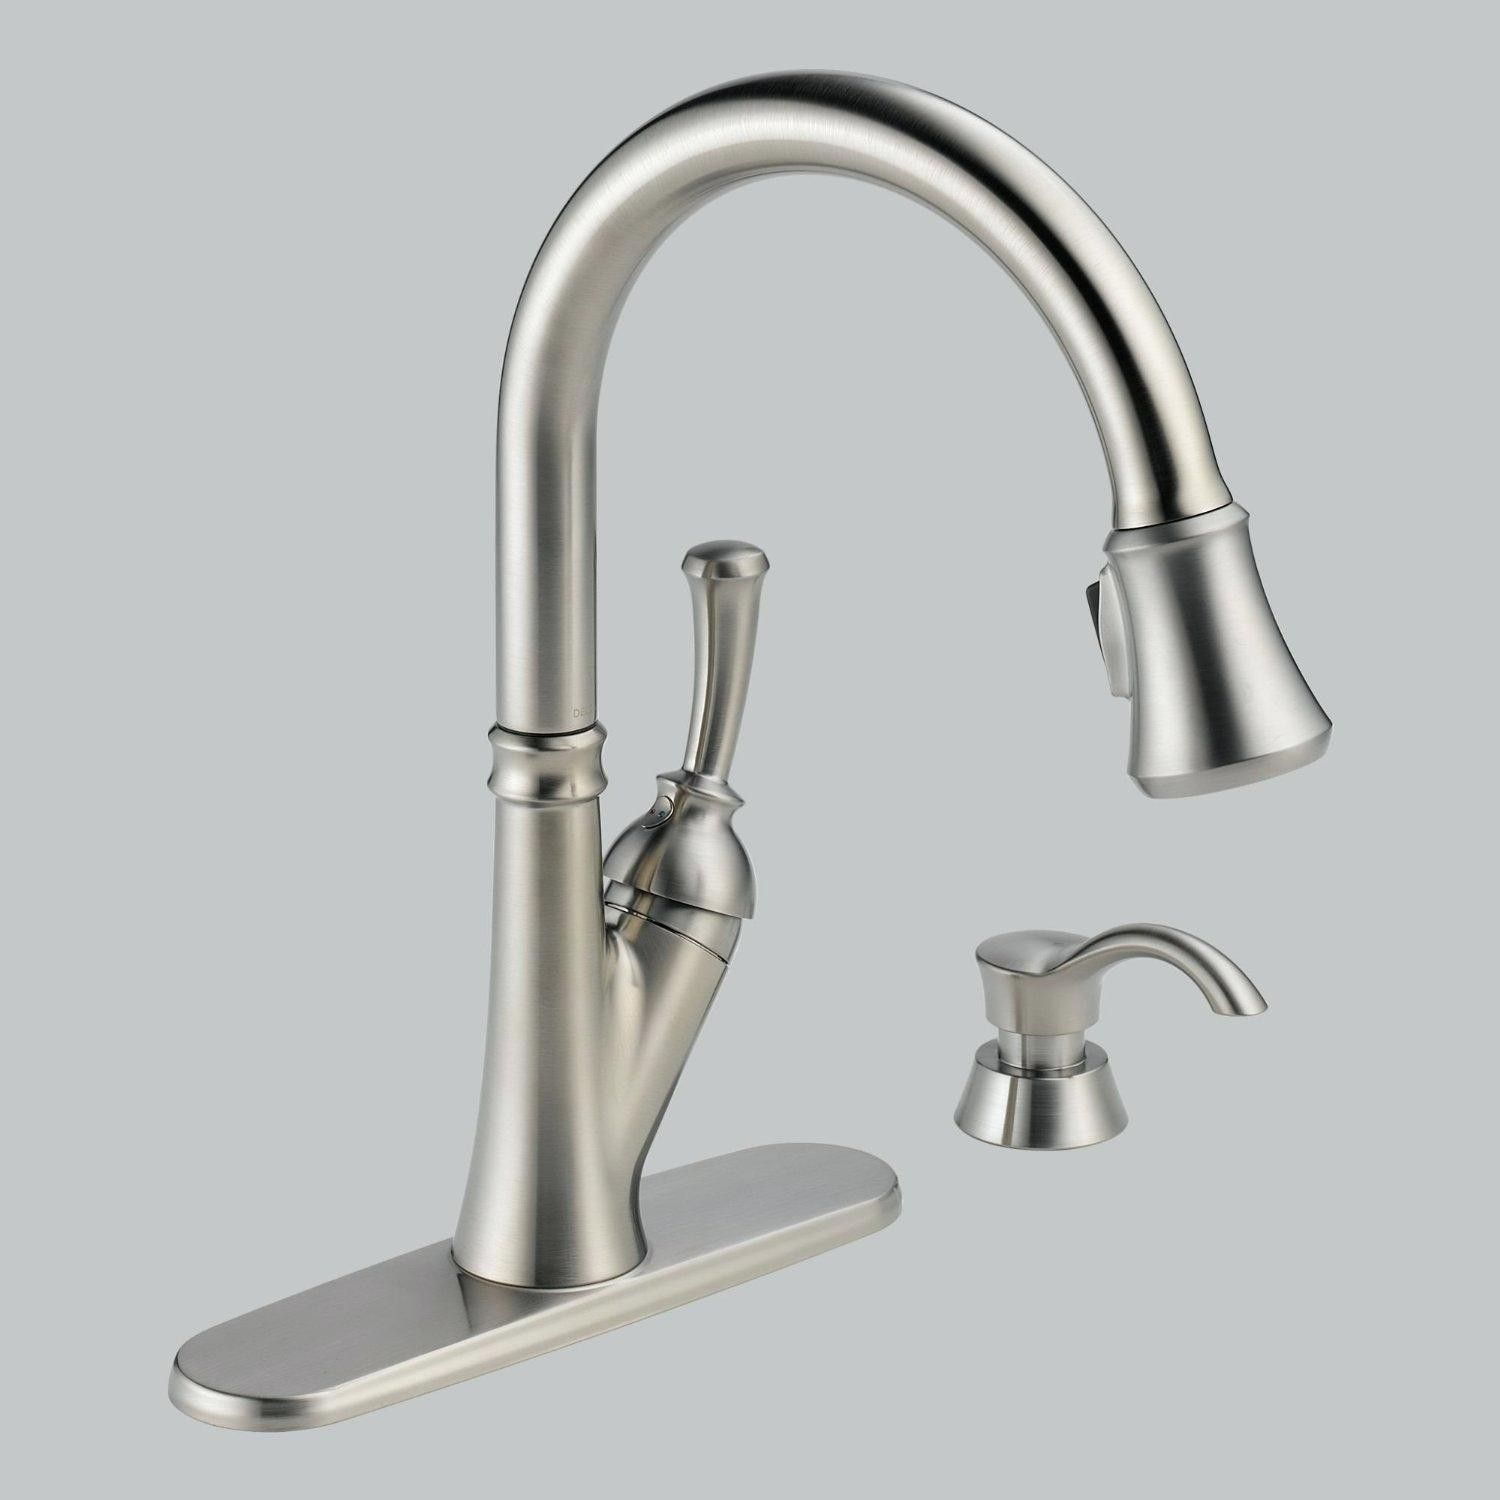 New Delta Faucet Washer Repair | Washer, Faucet and Kitchen faucet ...